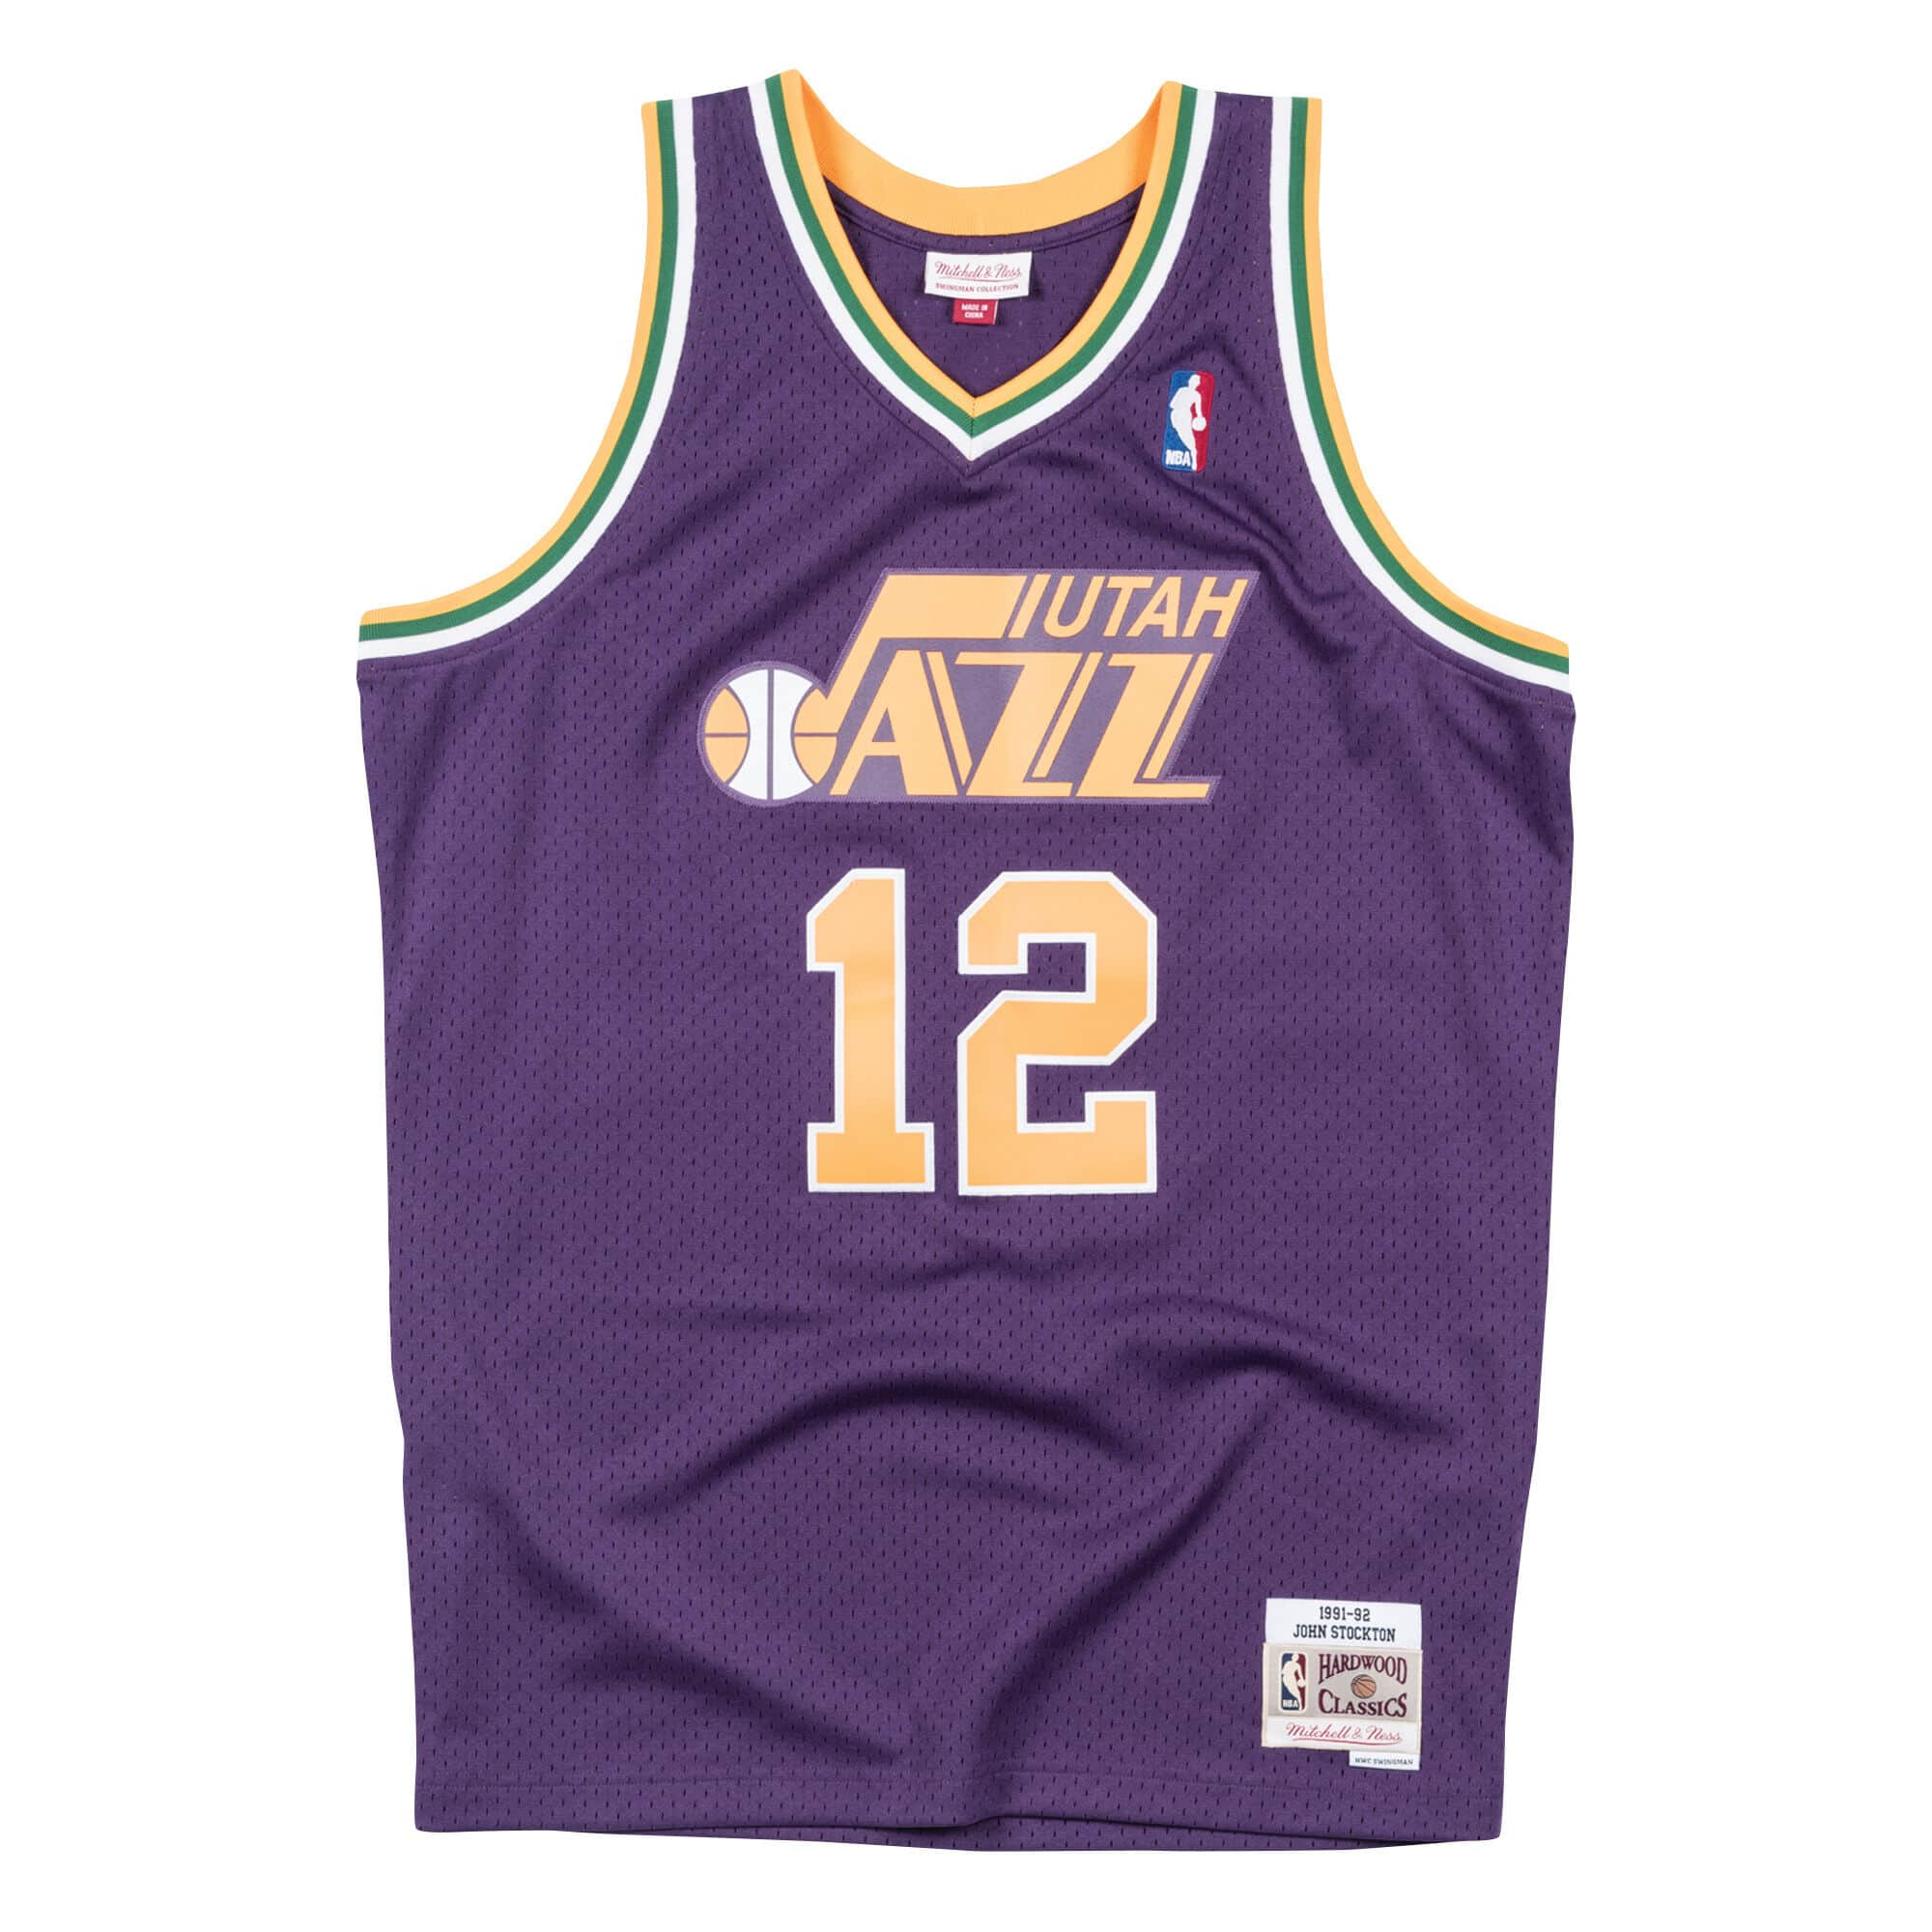 Swingman Jersey Utah Jazz Road 1991-92 John Stockton